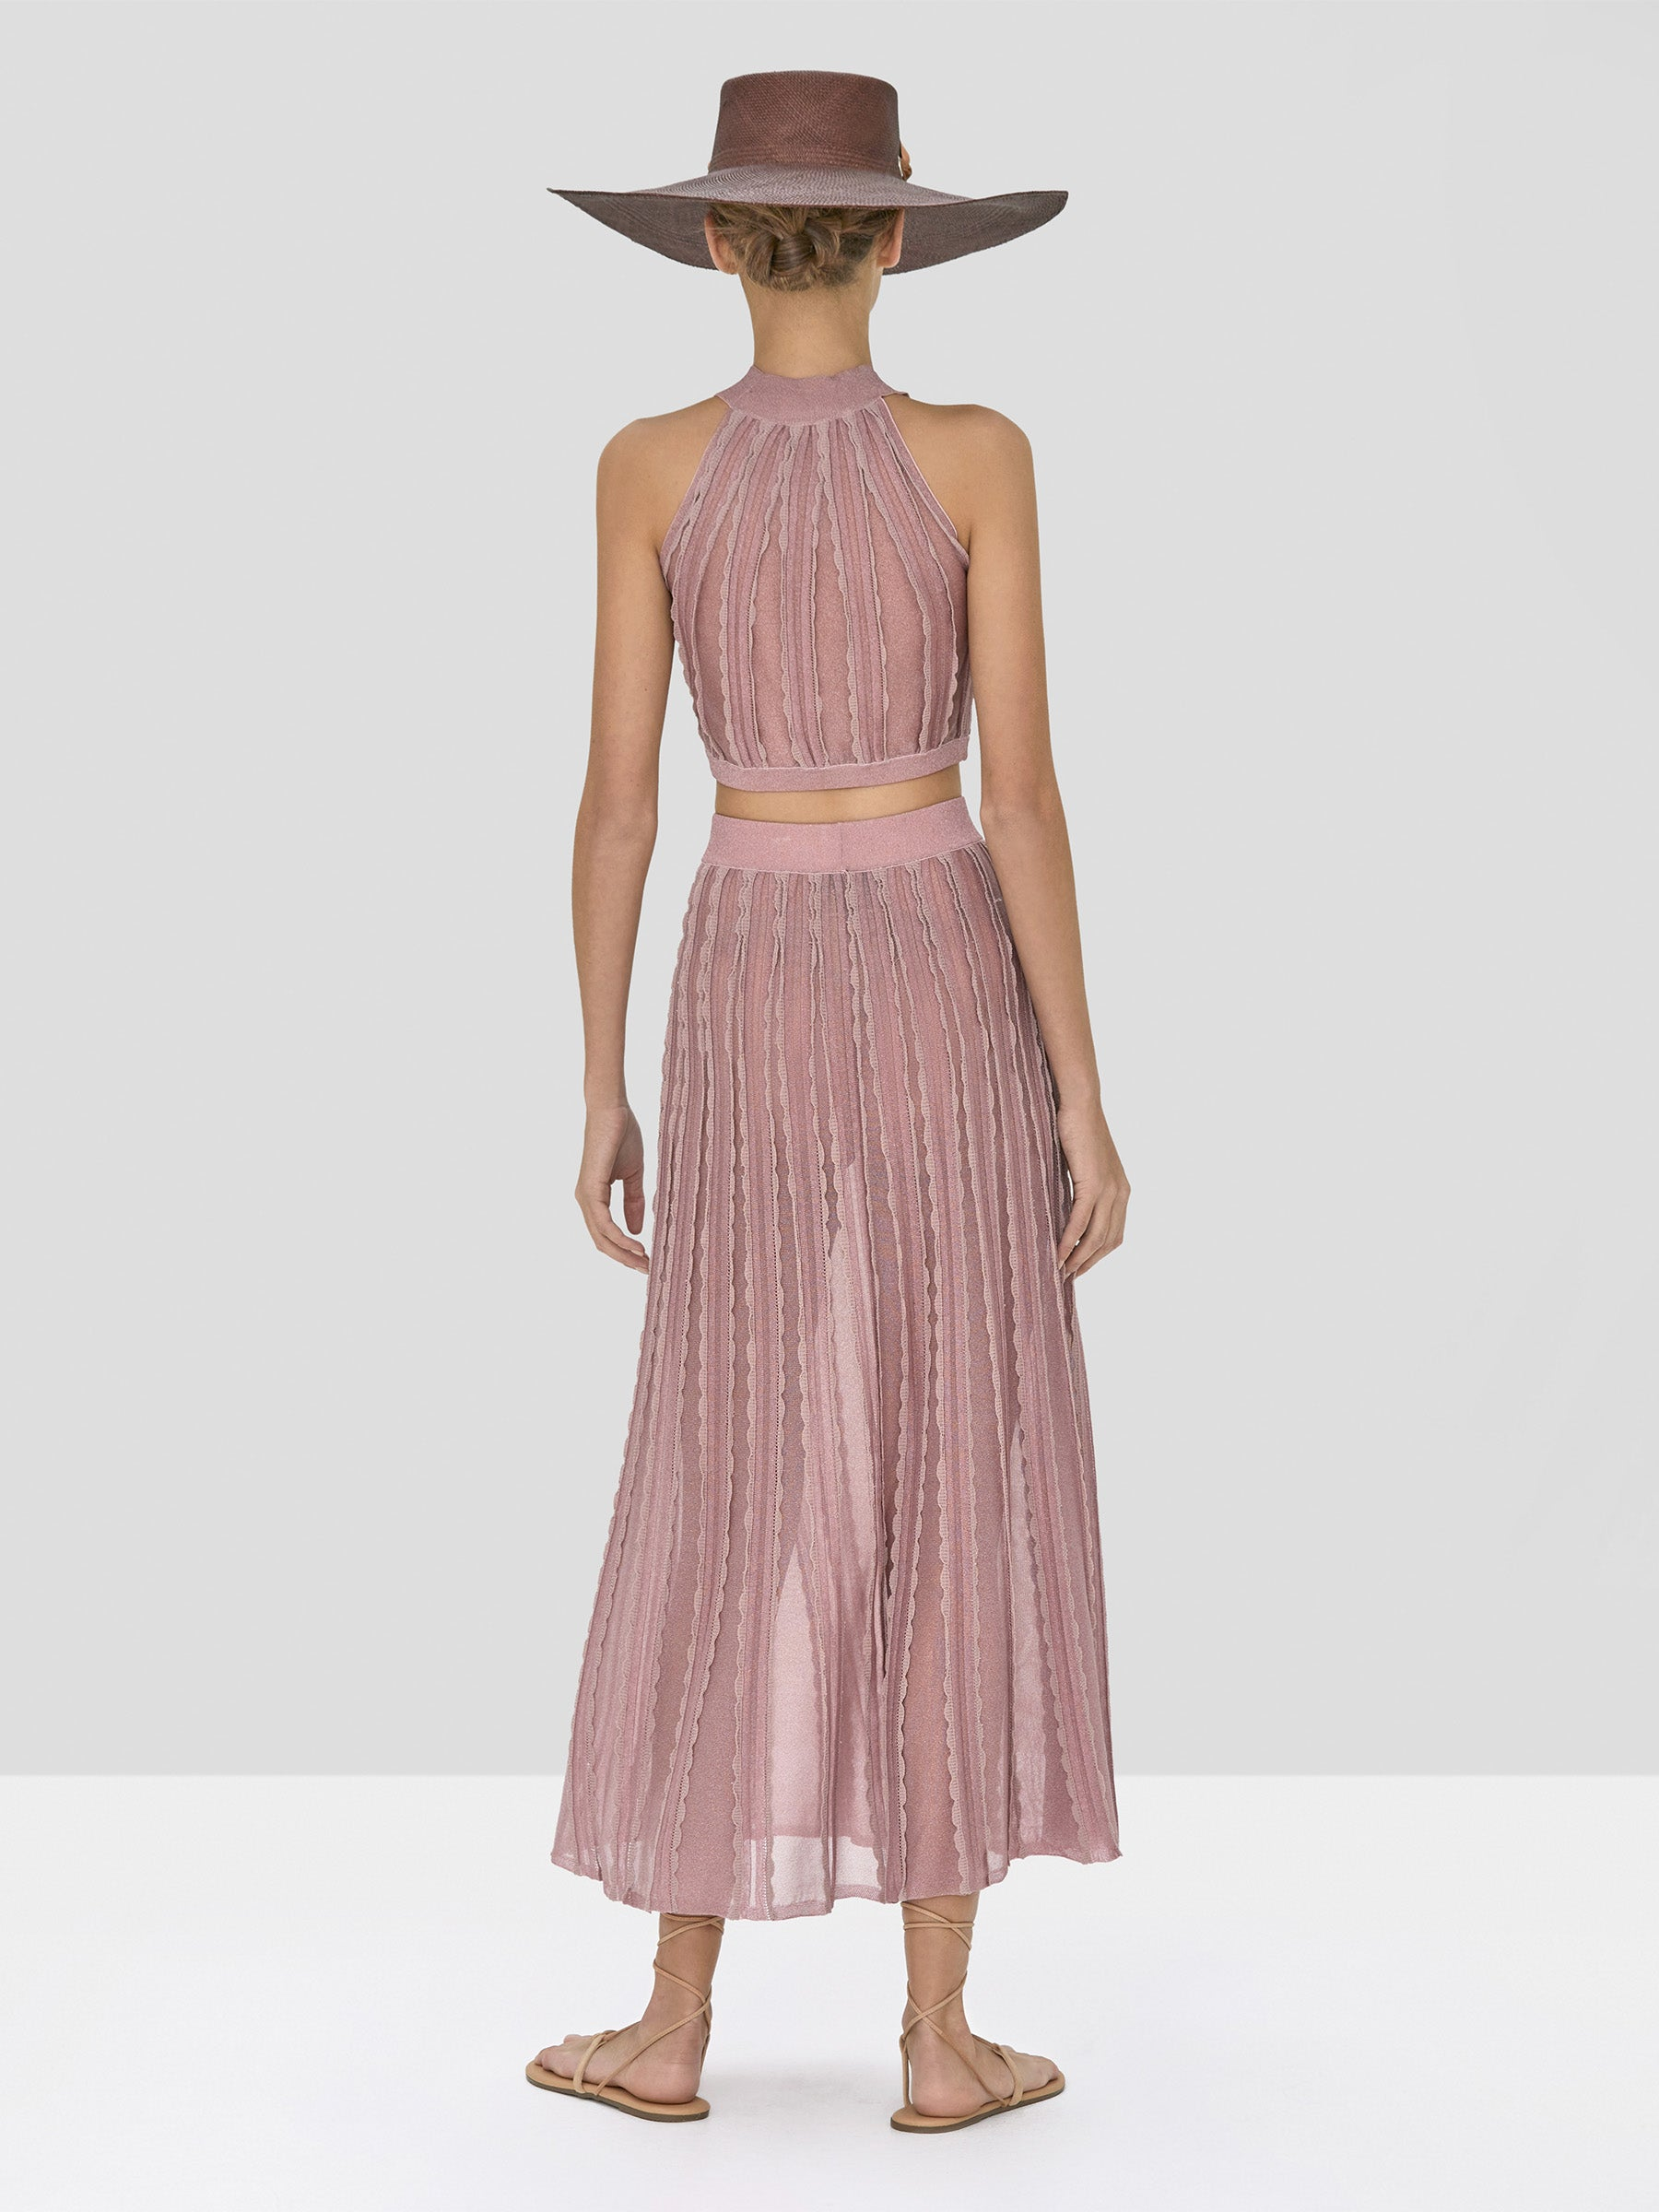 Alexis Keva Top and Zea Skirt in Blush from Spring Summer 2020 Collection  - Rear View